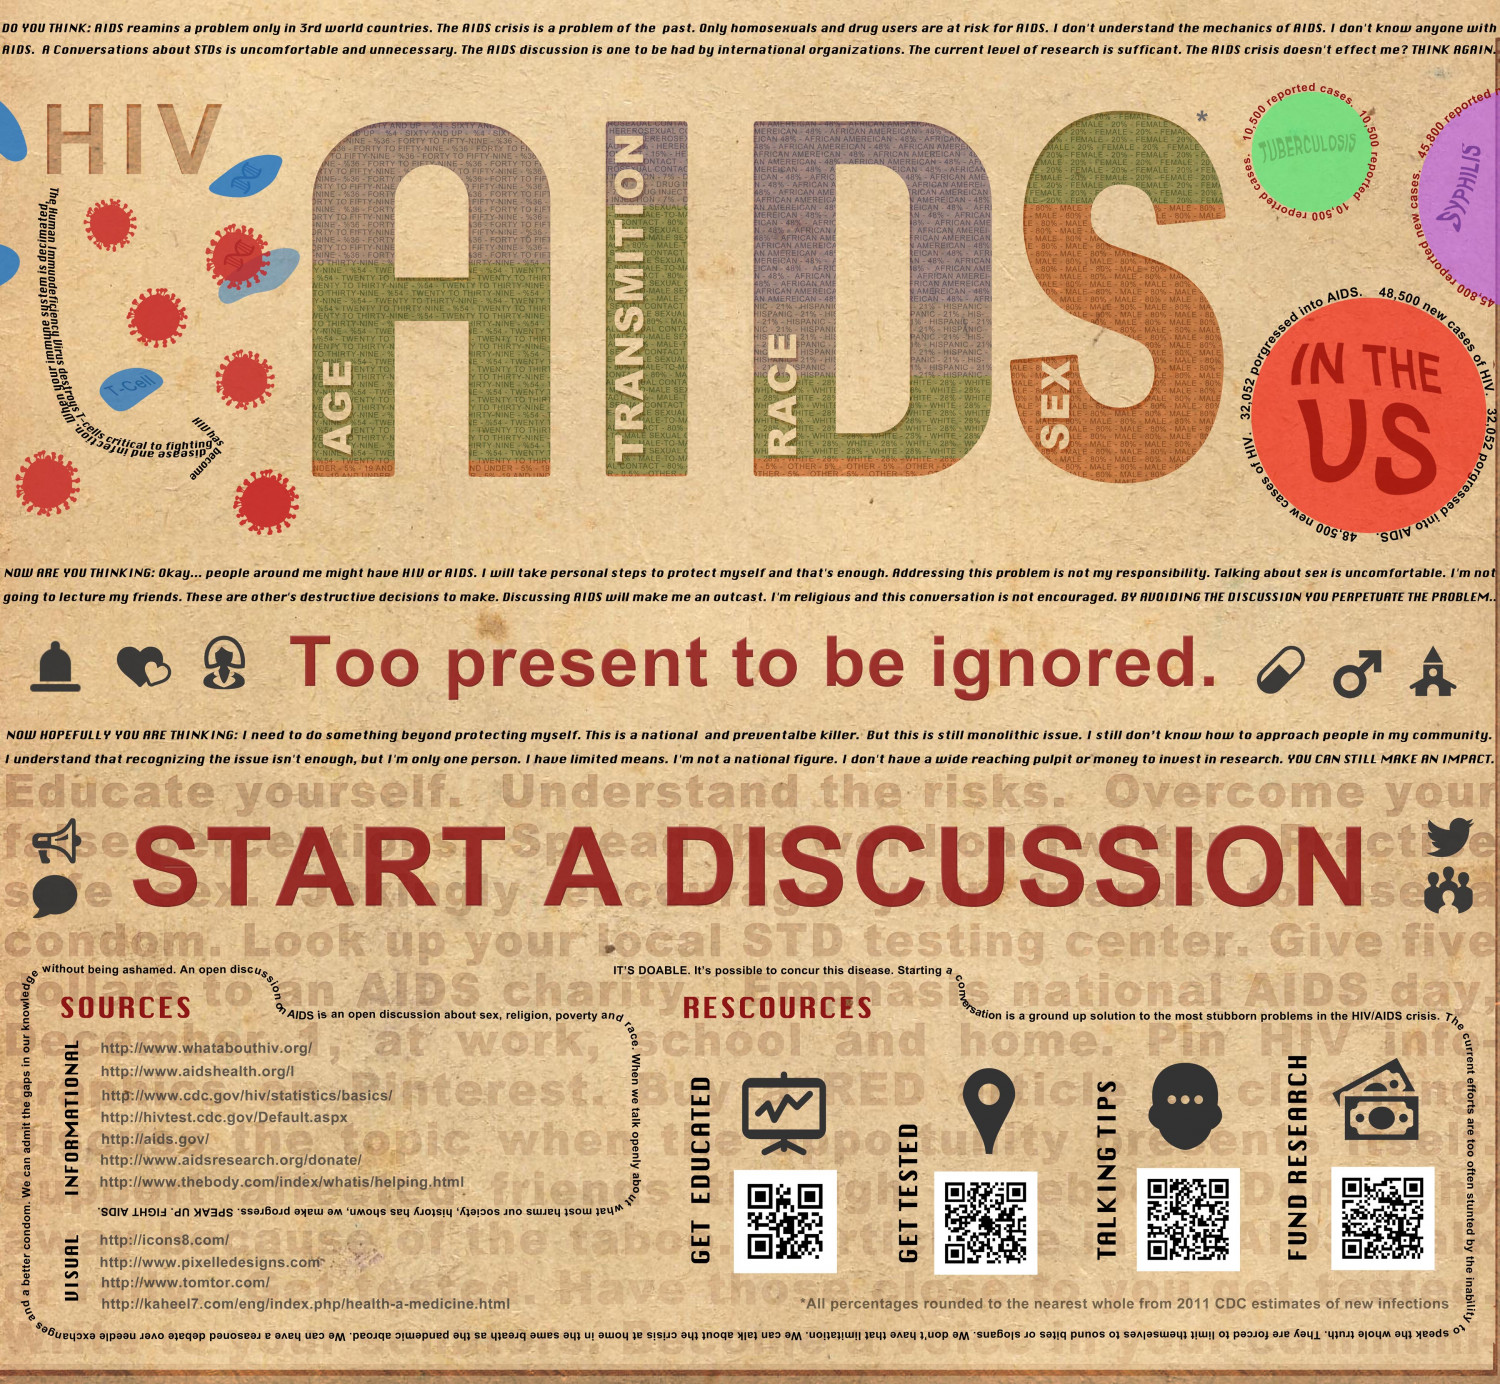 The Basics: HIV/AIDS in the United States Infographic